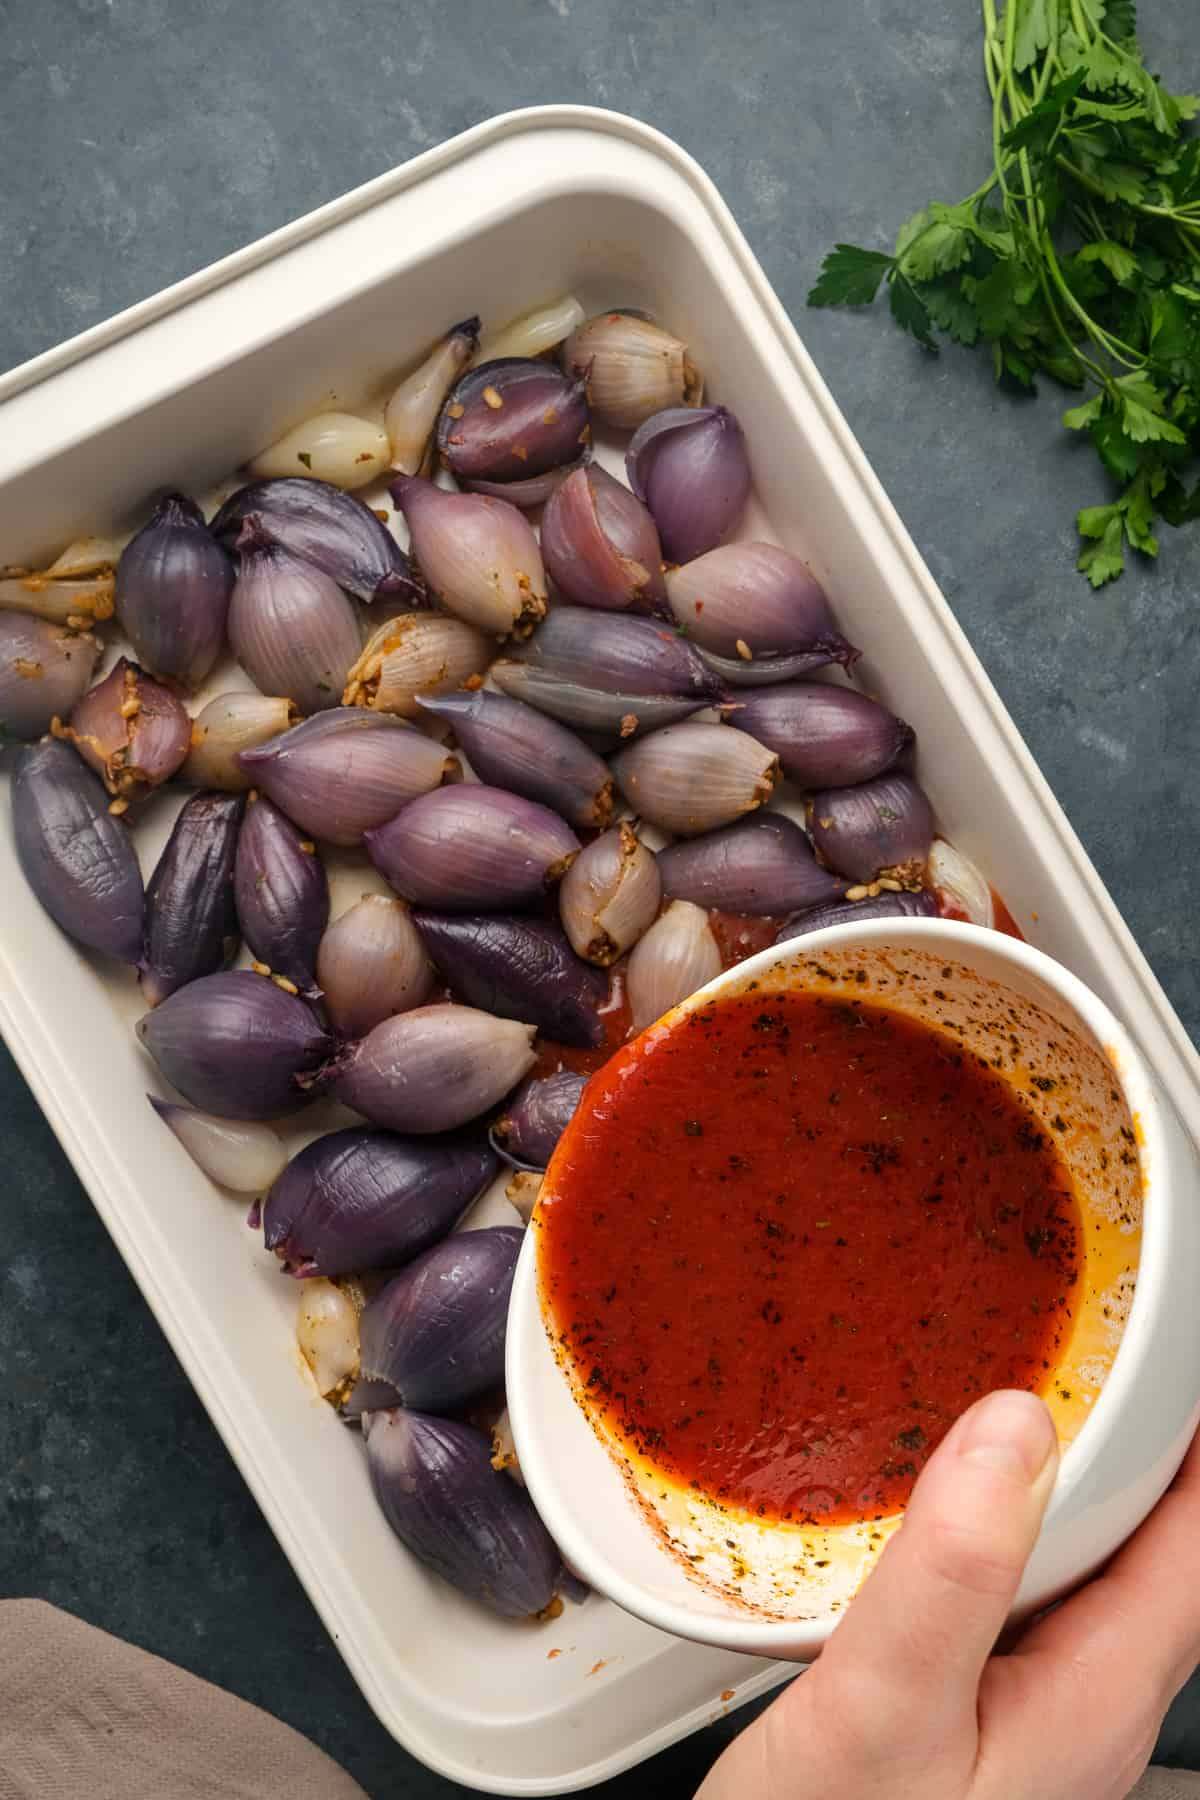 A hand pouring tomato sauce over stuffed purple onions in a baking pan.